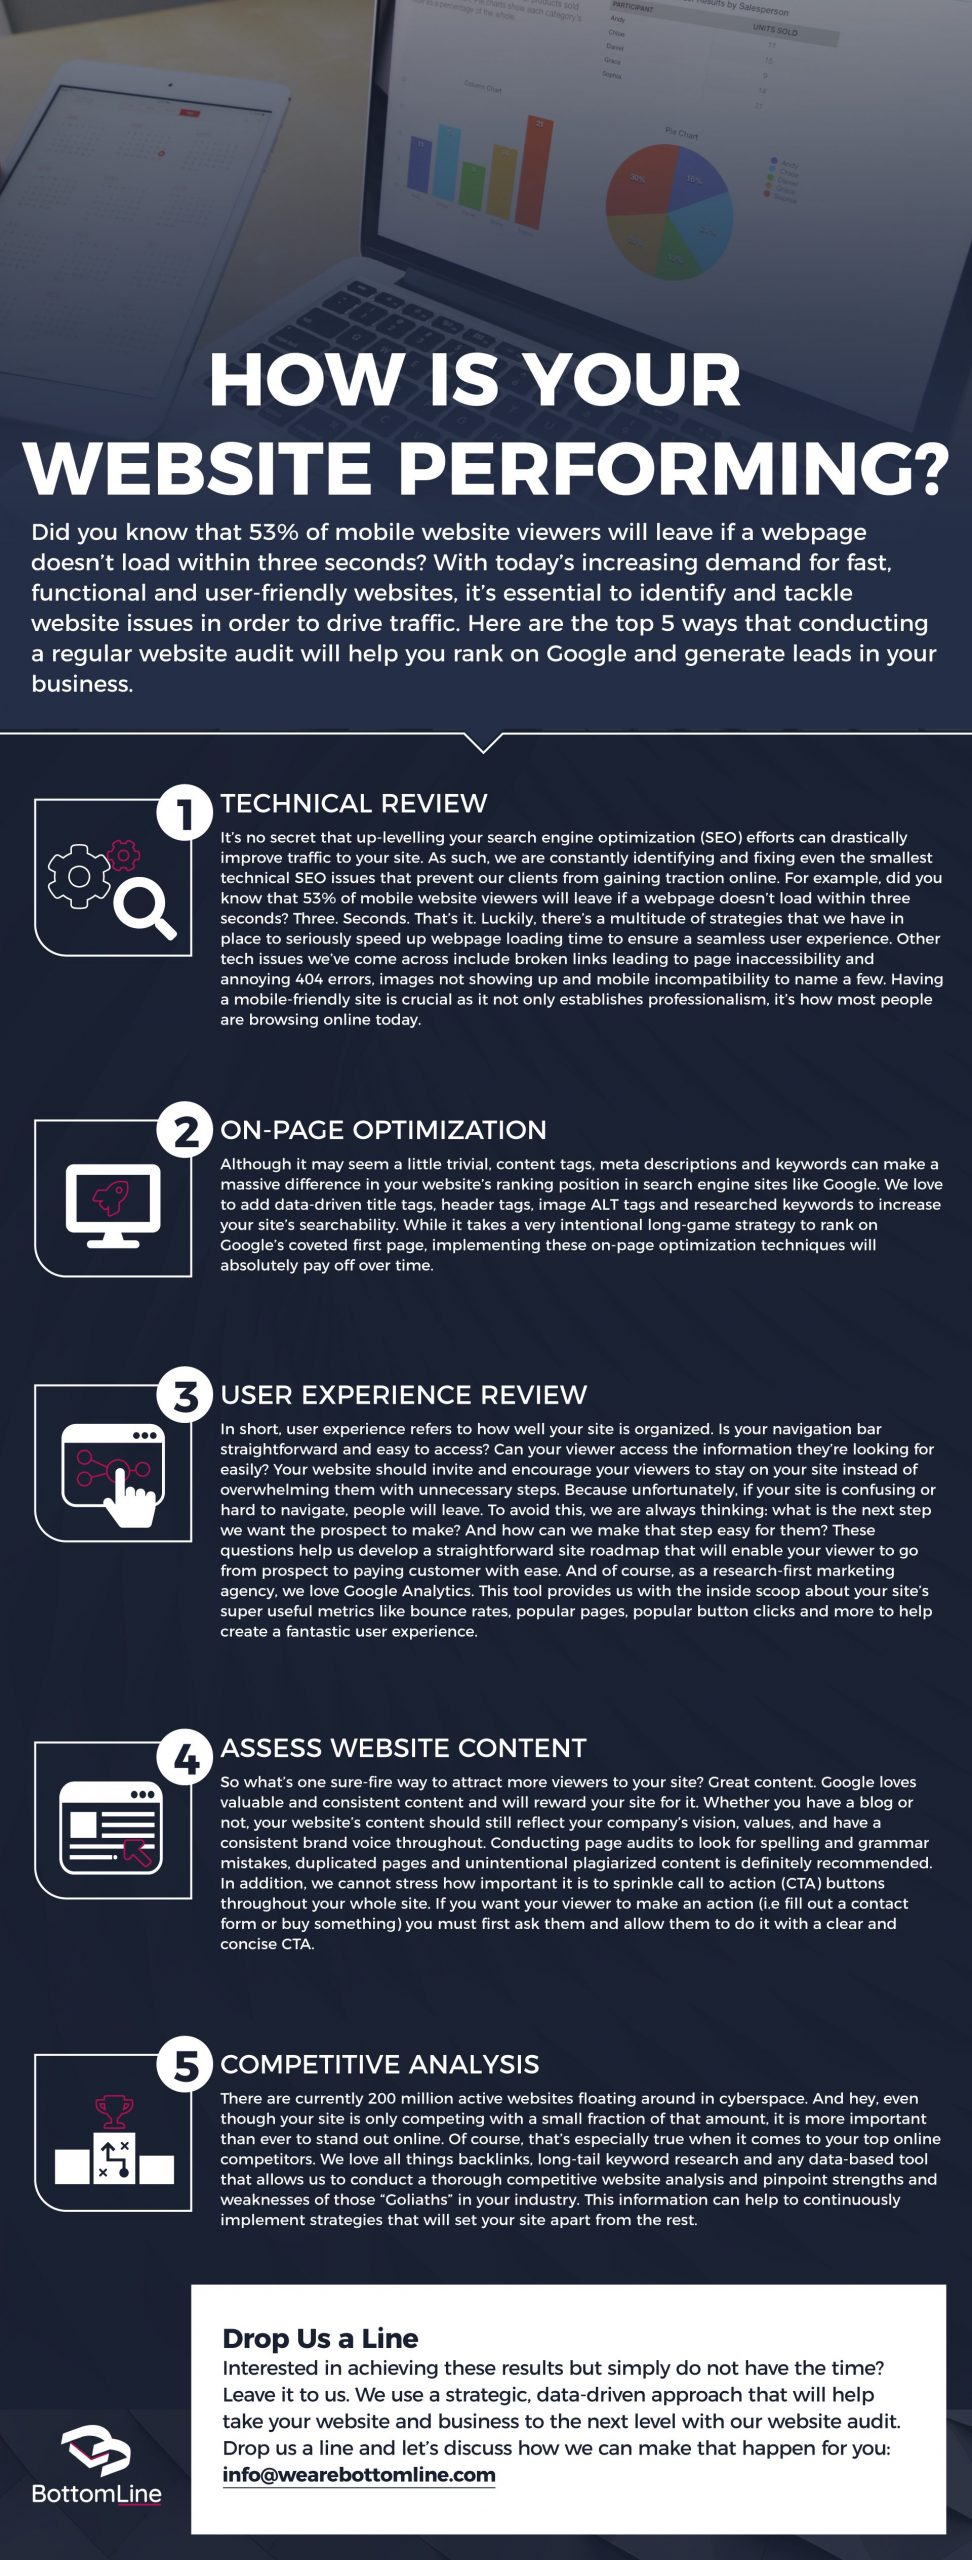 How Is Your Website Performing Infographic by BottomLine